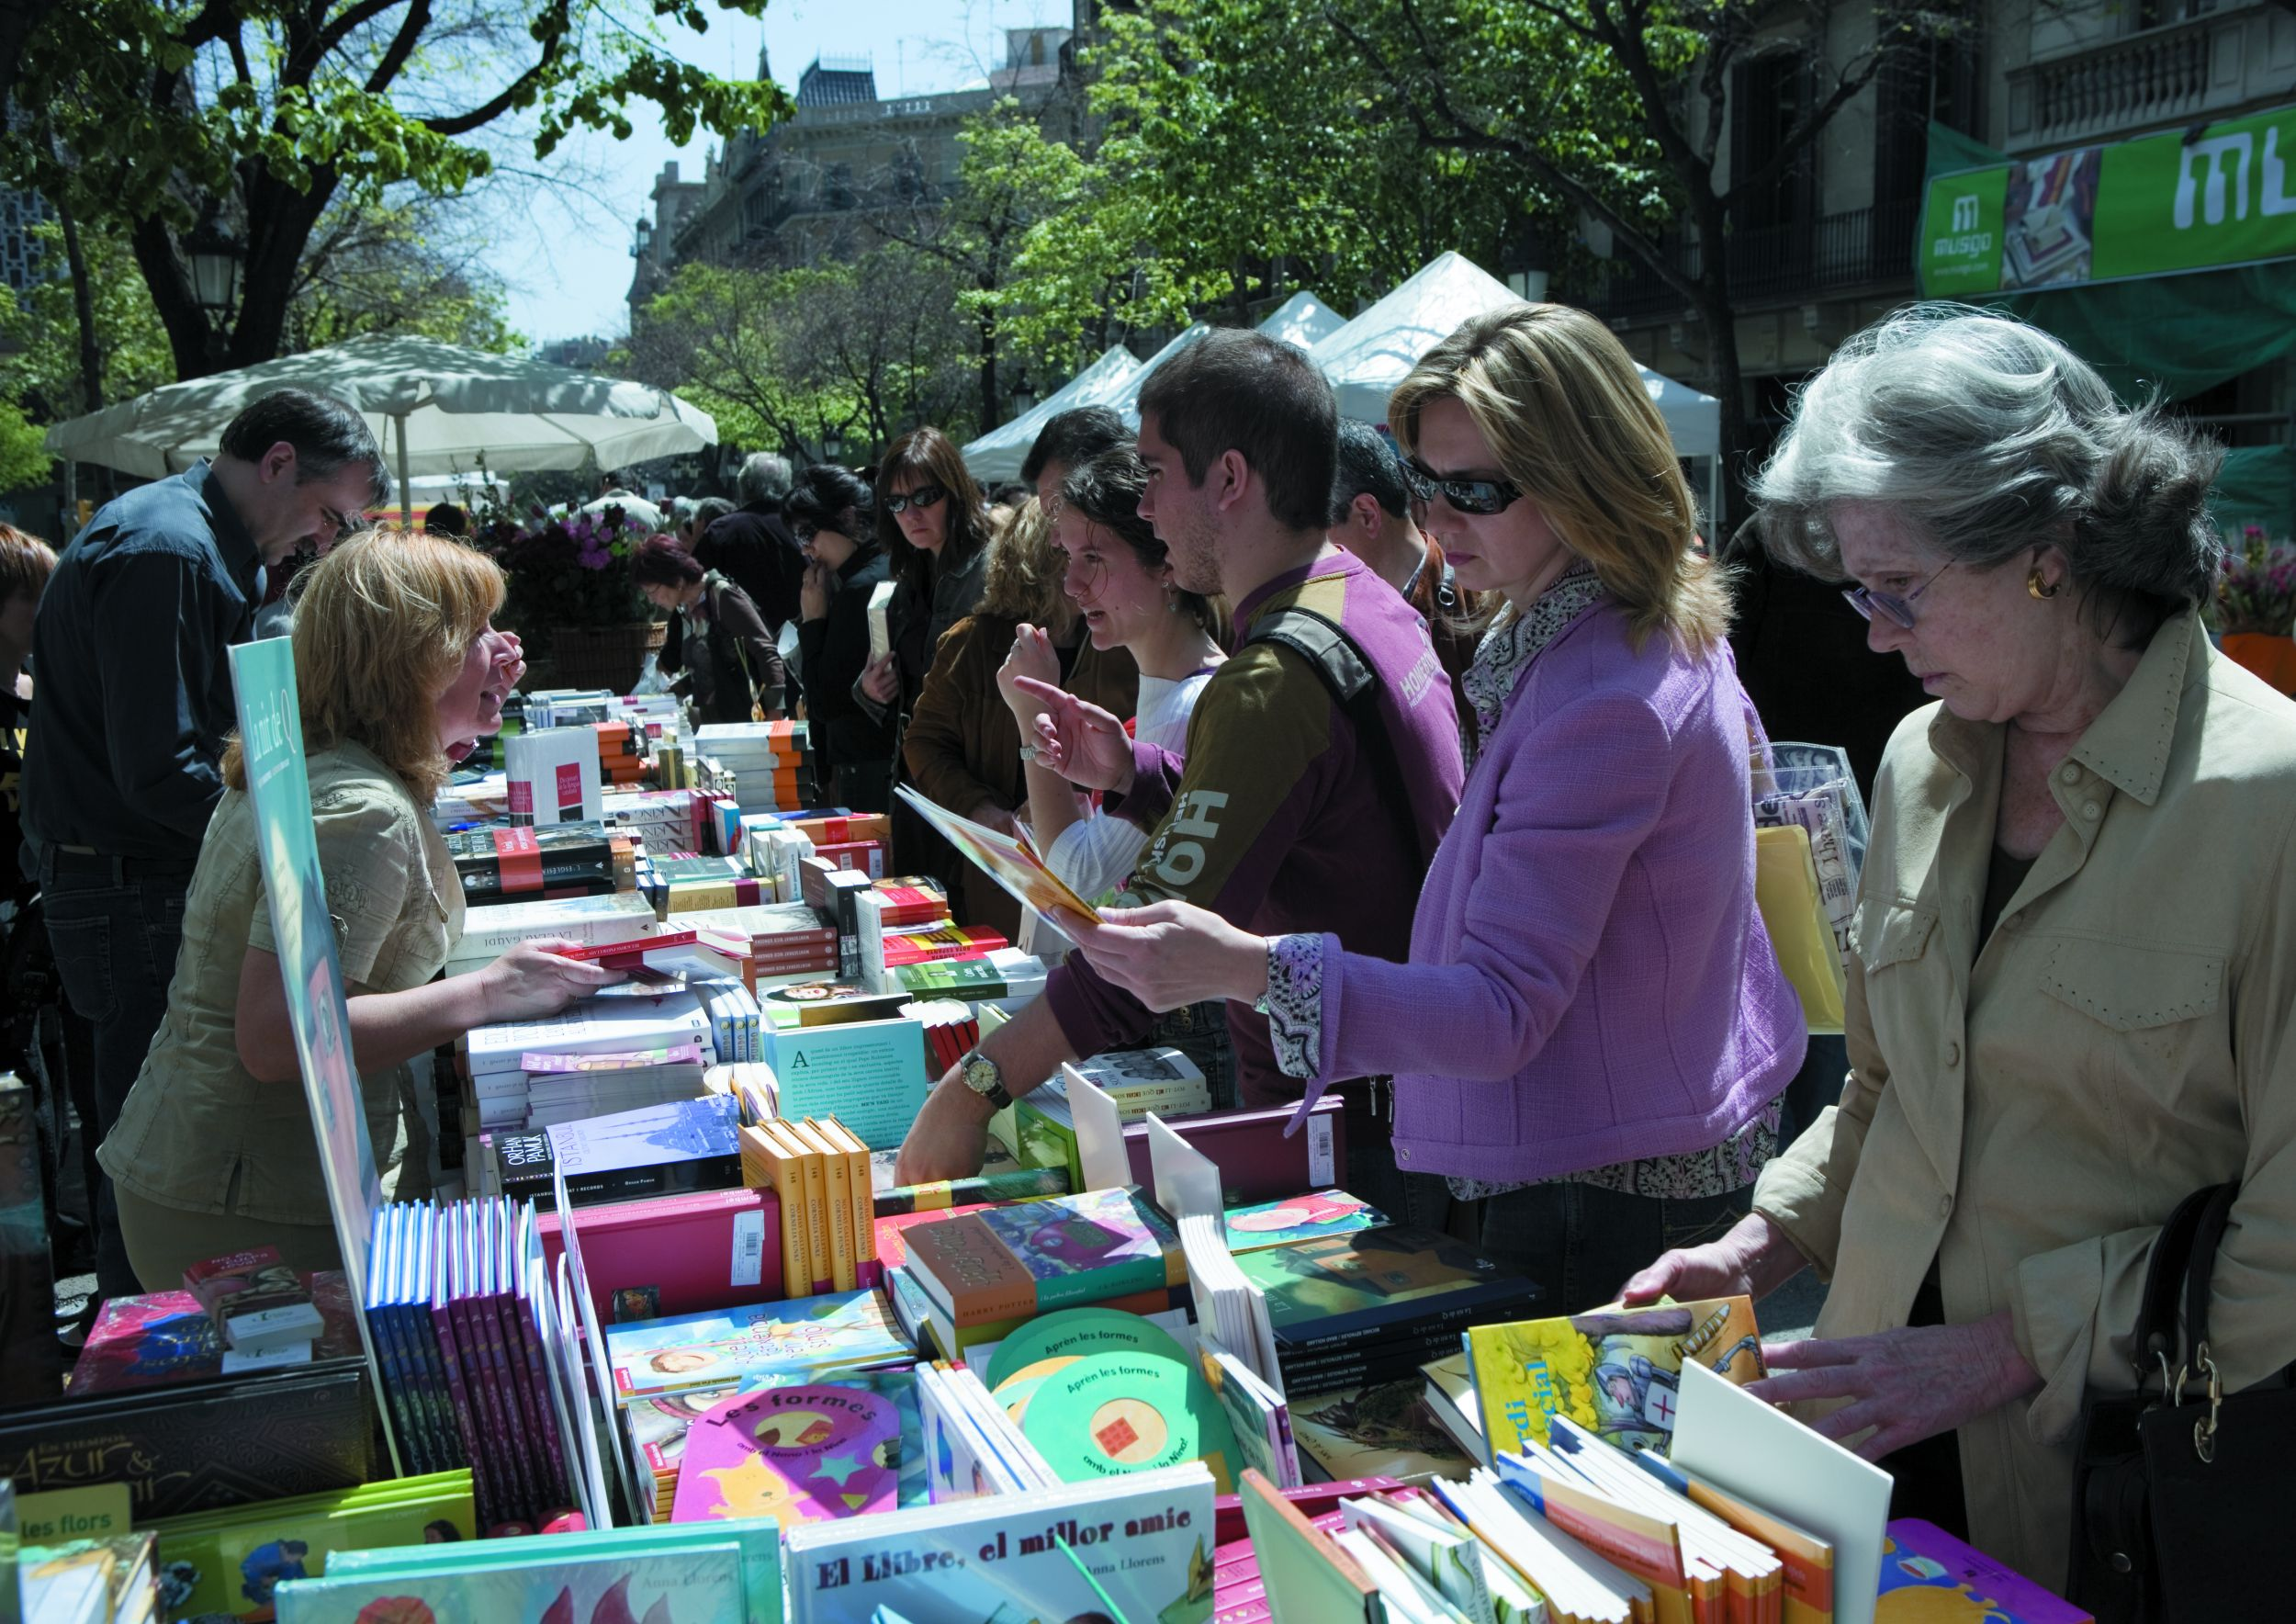 Book stalls at the Sant Jordi Festival